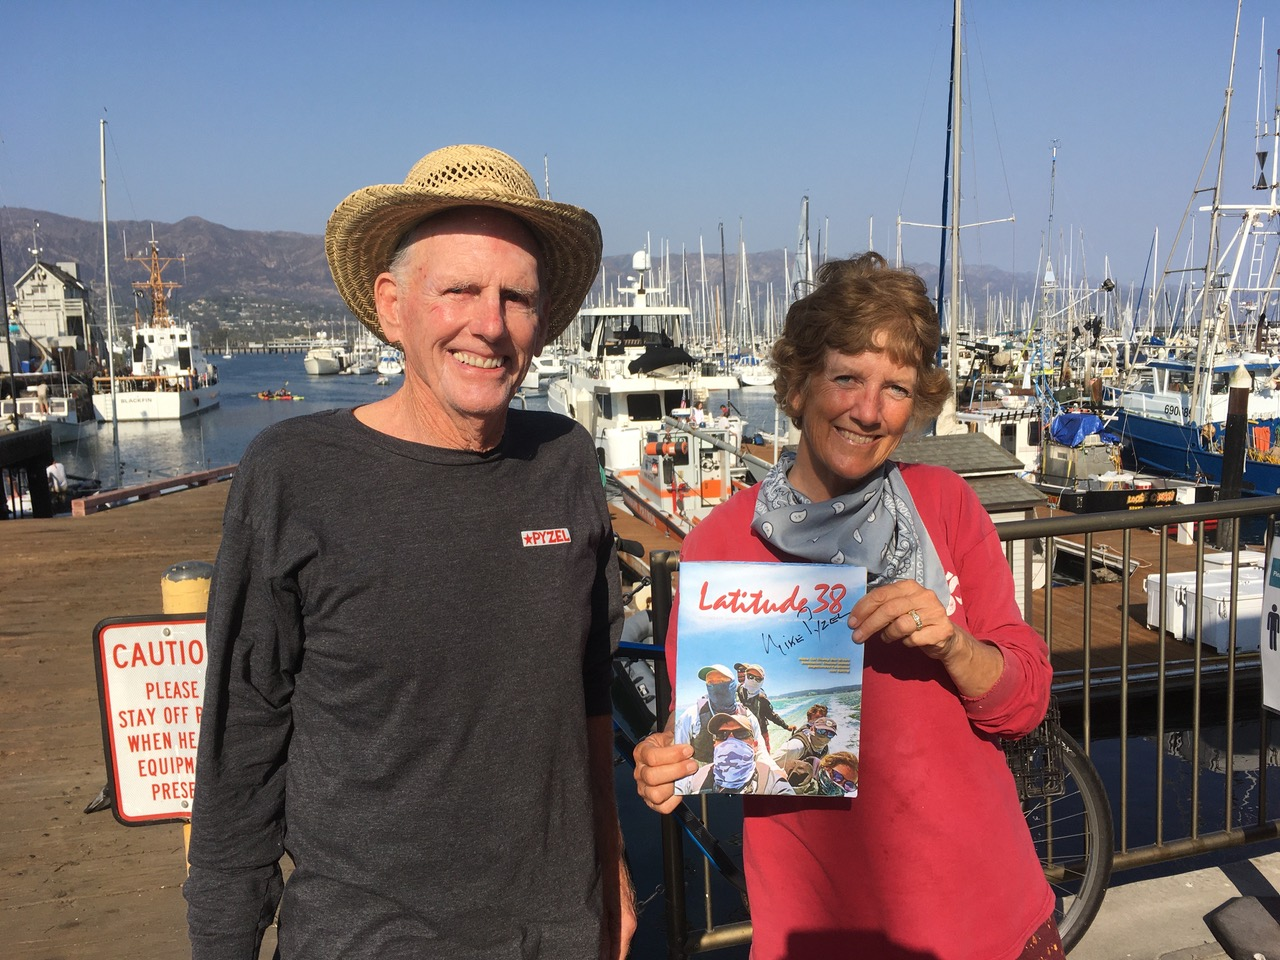 Jackie met Mike Pyzel enroute to Channel Islands